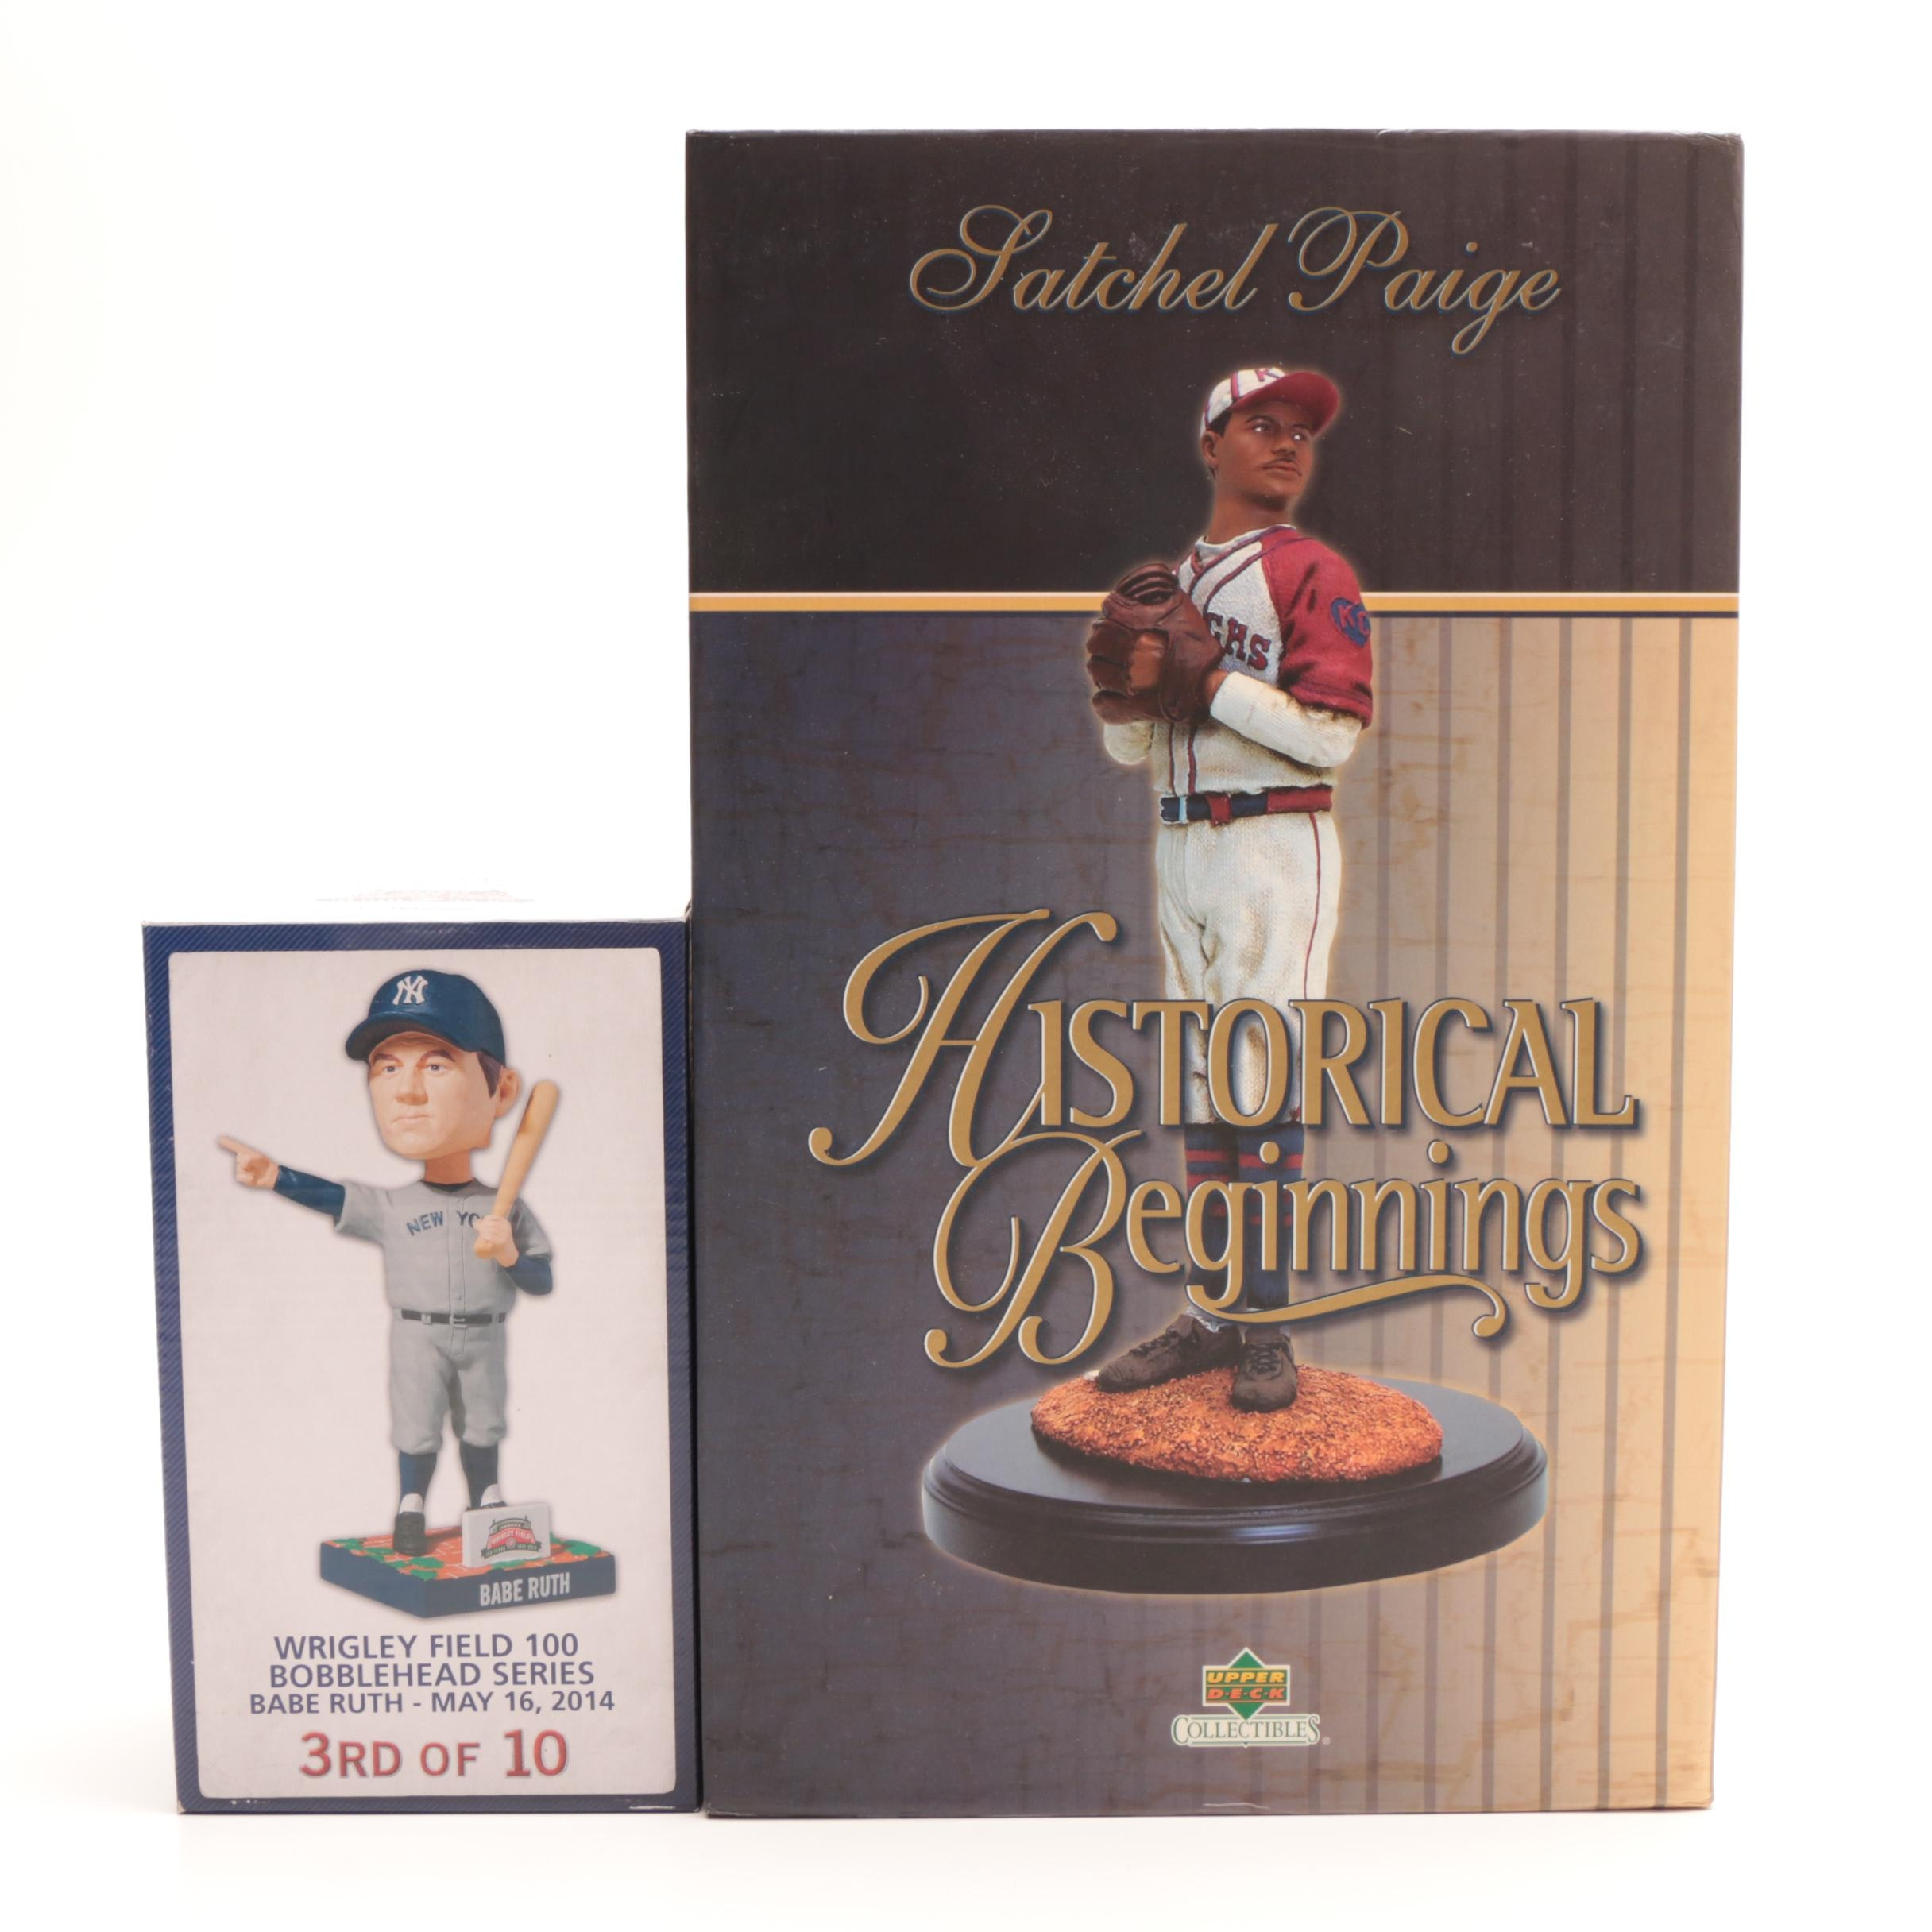 Satchel Paige Upper Deck Statue and Babe Ruth Bobblehead Doll From Wrigley Field